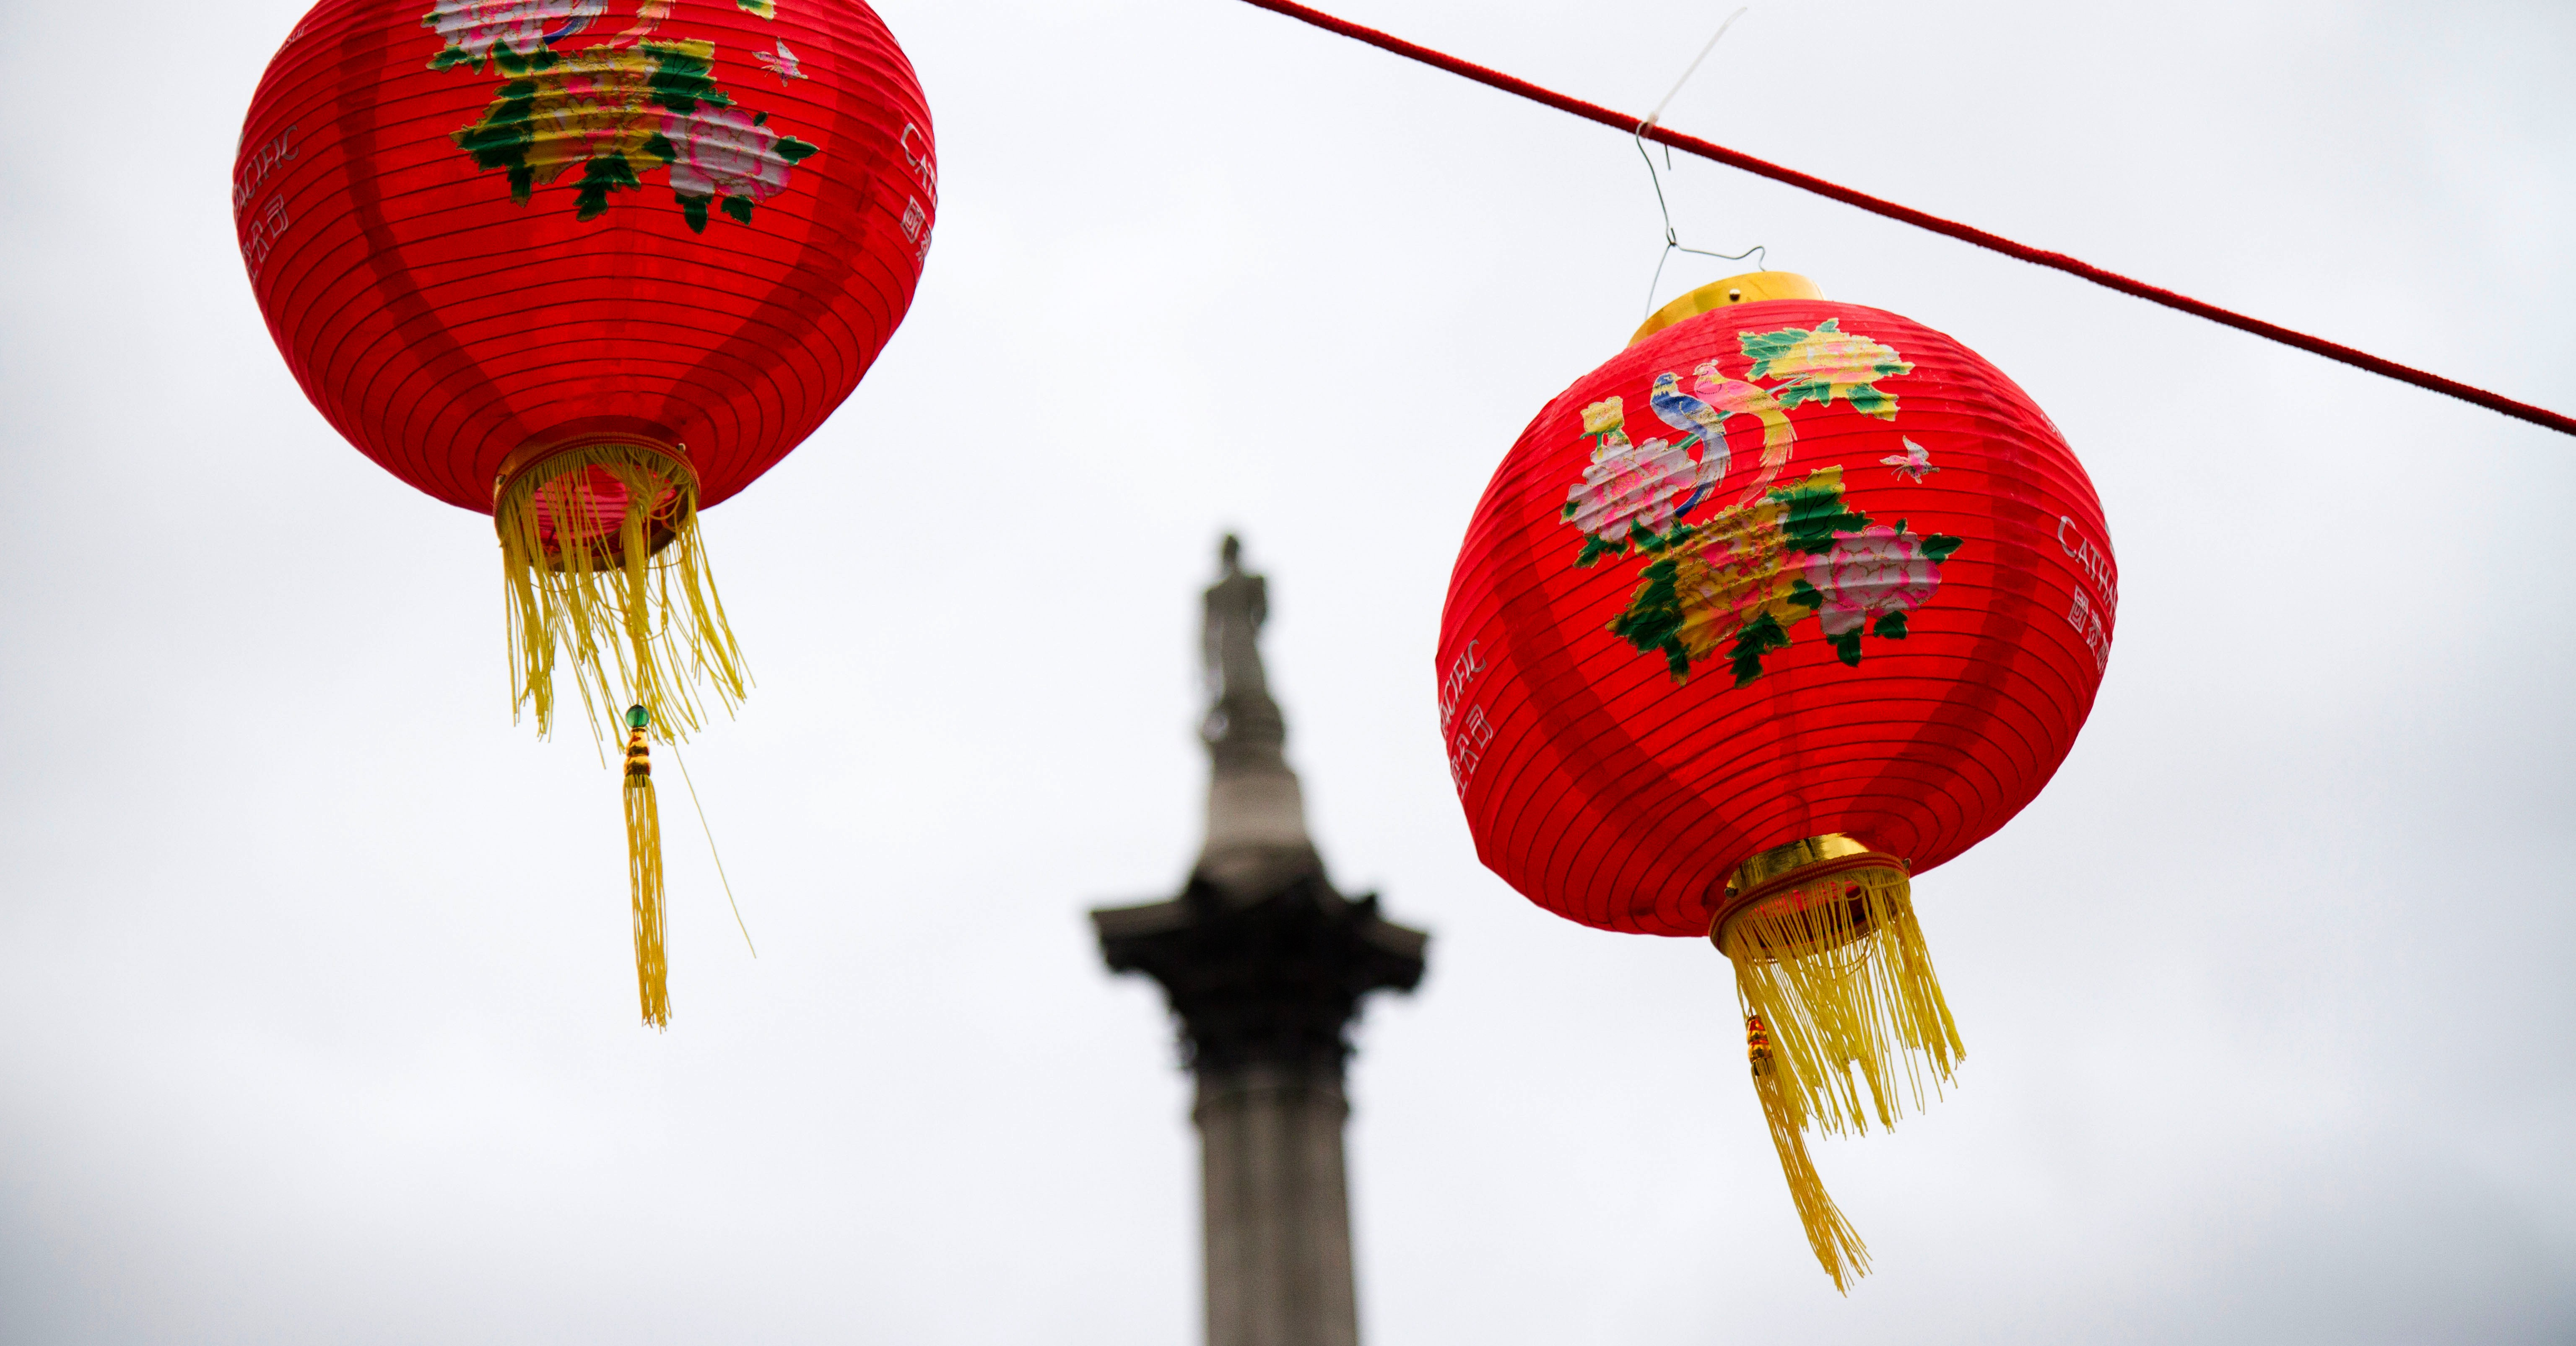 London's Chinese New Year celebration is among the biggest outside Asia